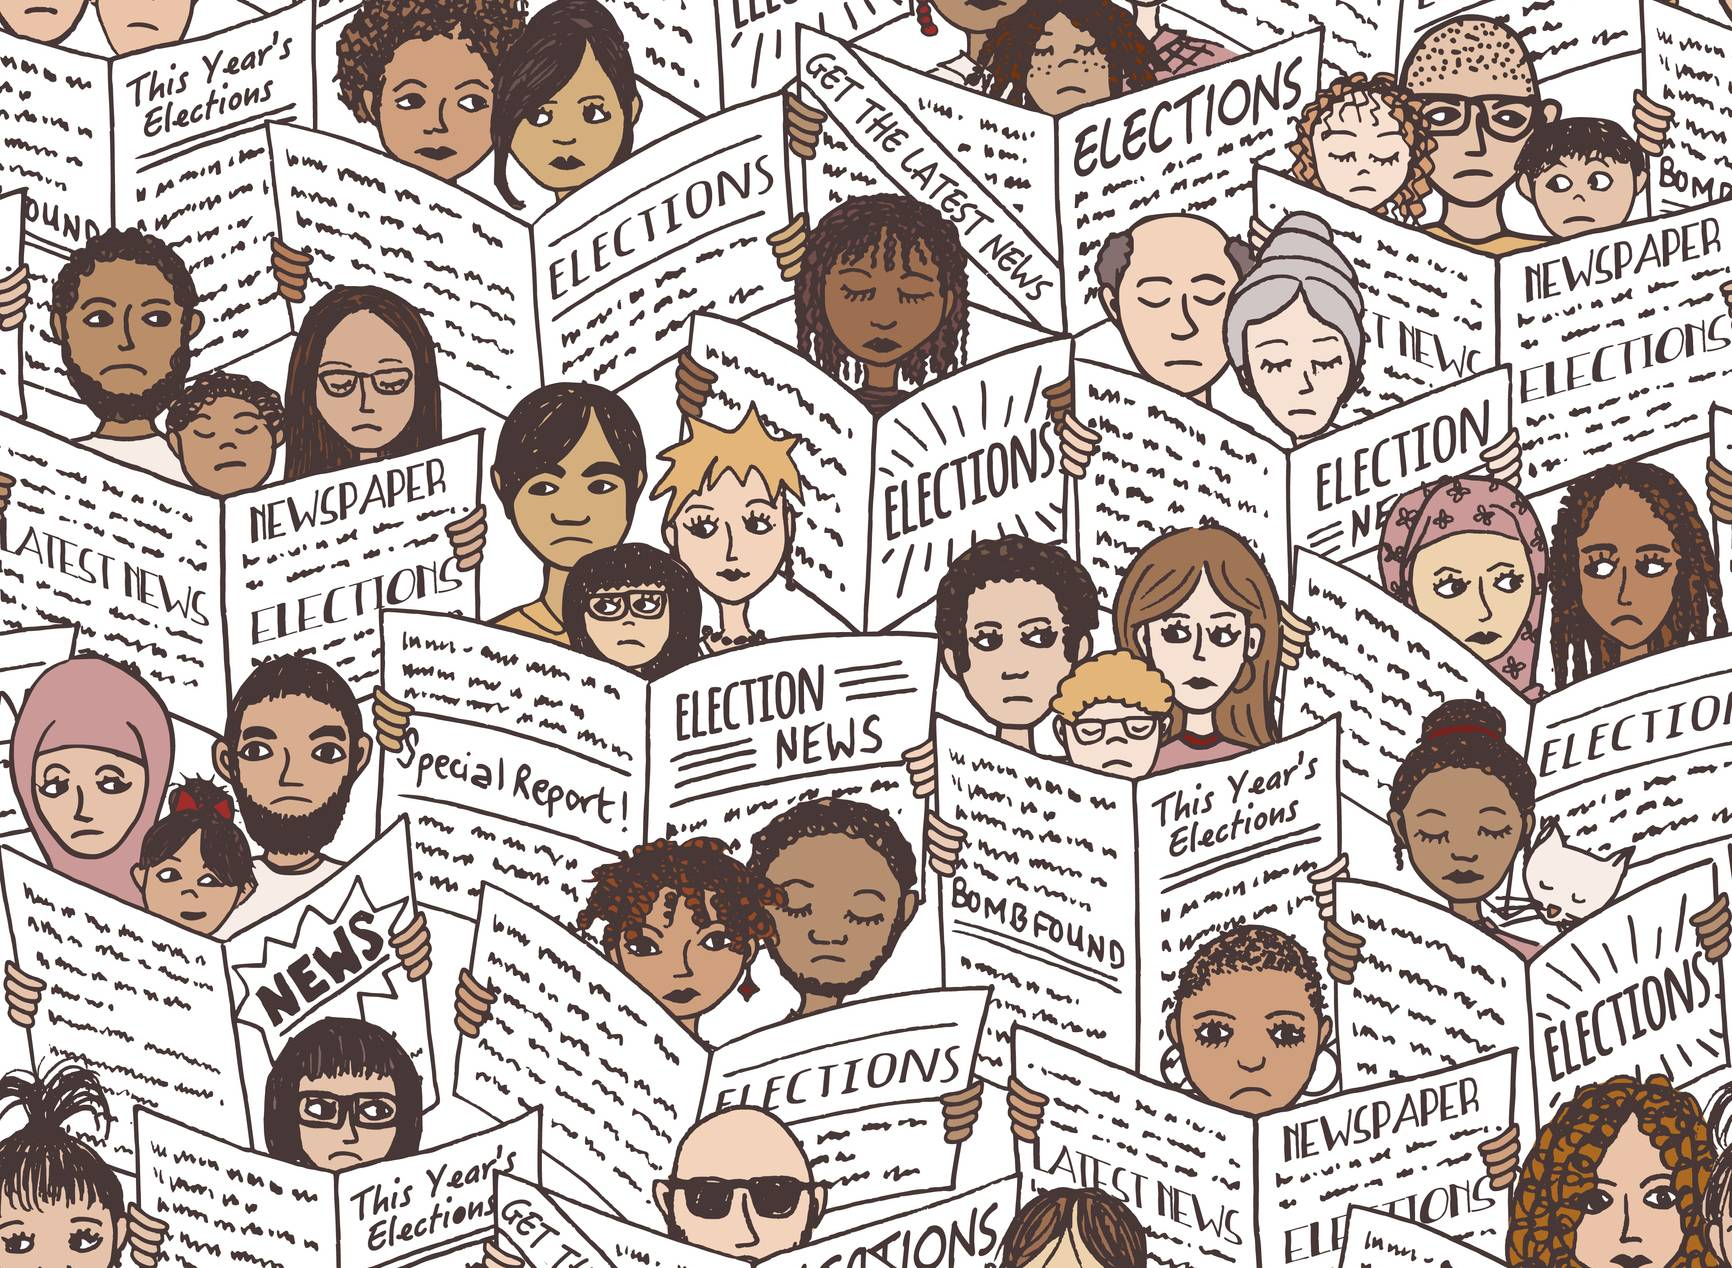 How Classroom Political Discussions — Controversies, Too — Prepare Students for Needed Civic Participation